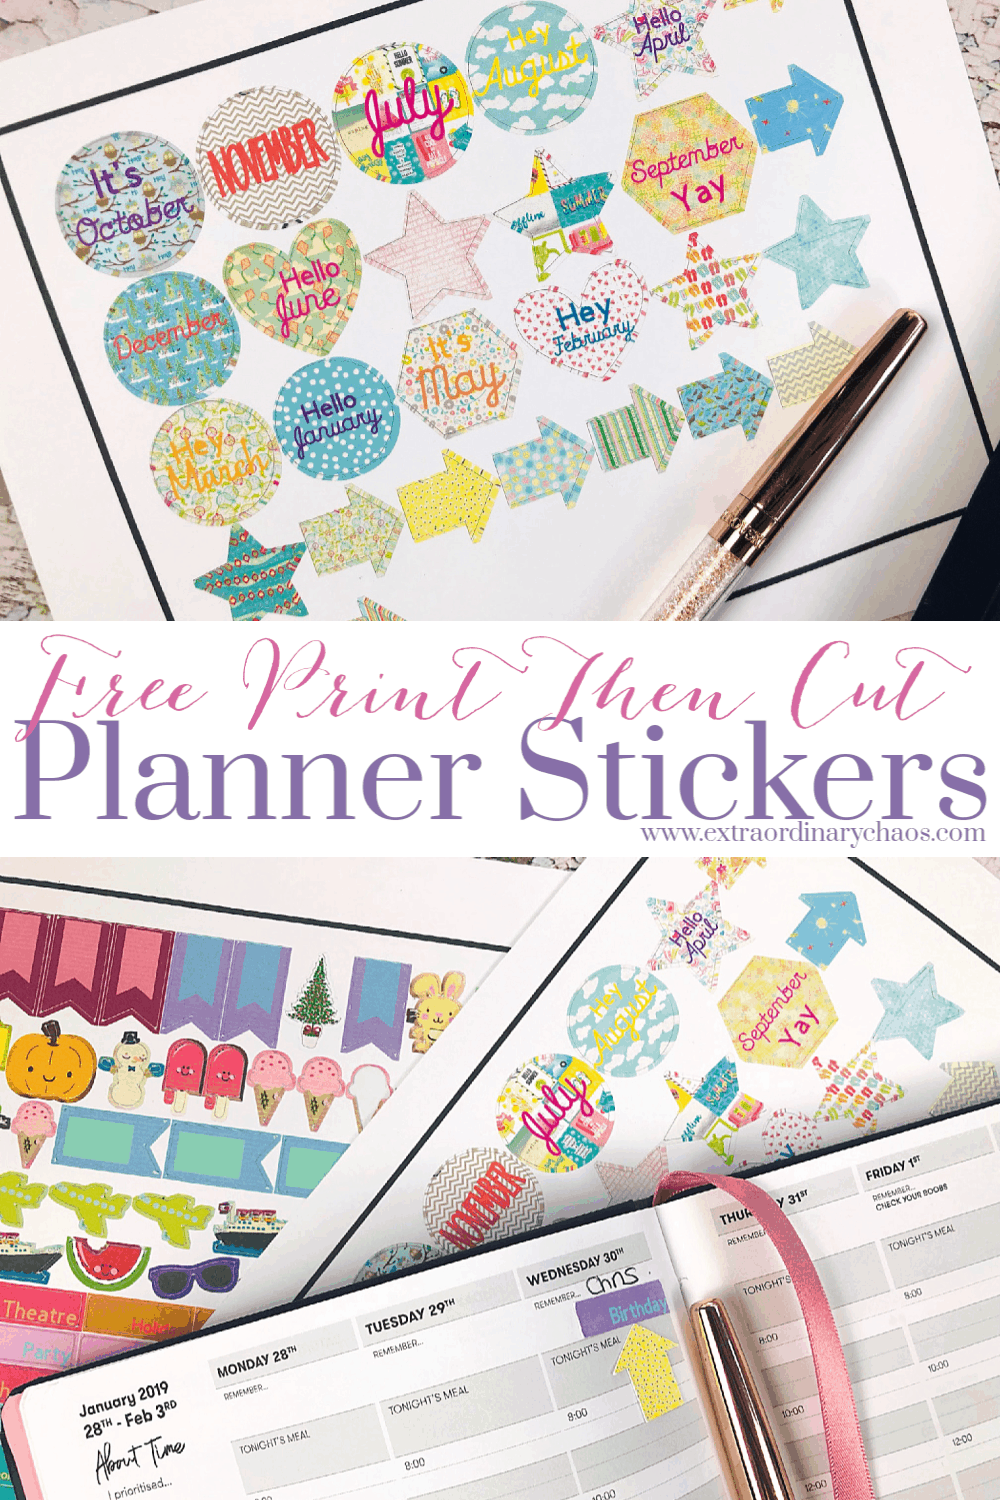 Free printable planner stickers made with the Cricut Maker #plannerstickers #cricutmaker #cricutprojects #cricutprintandcut